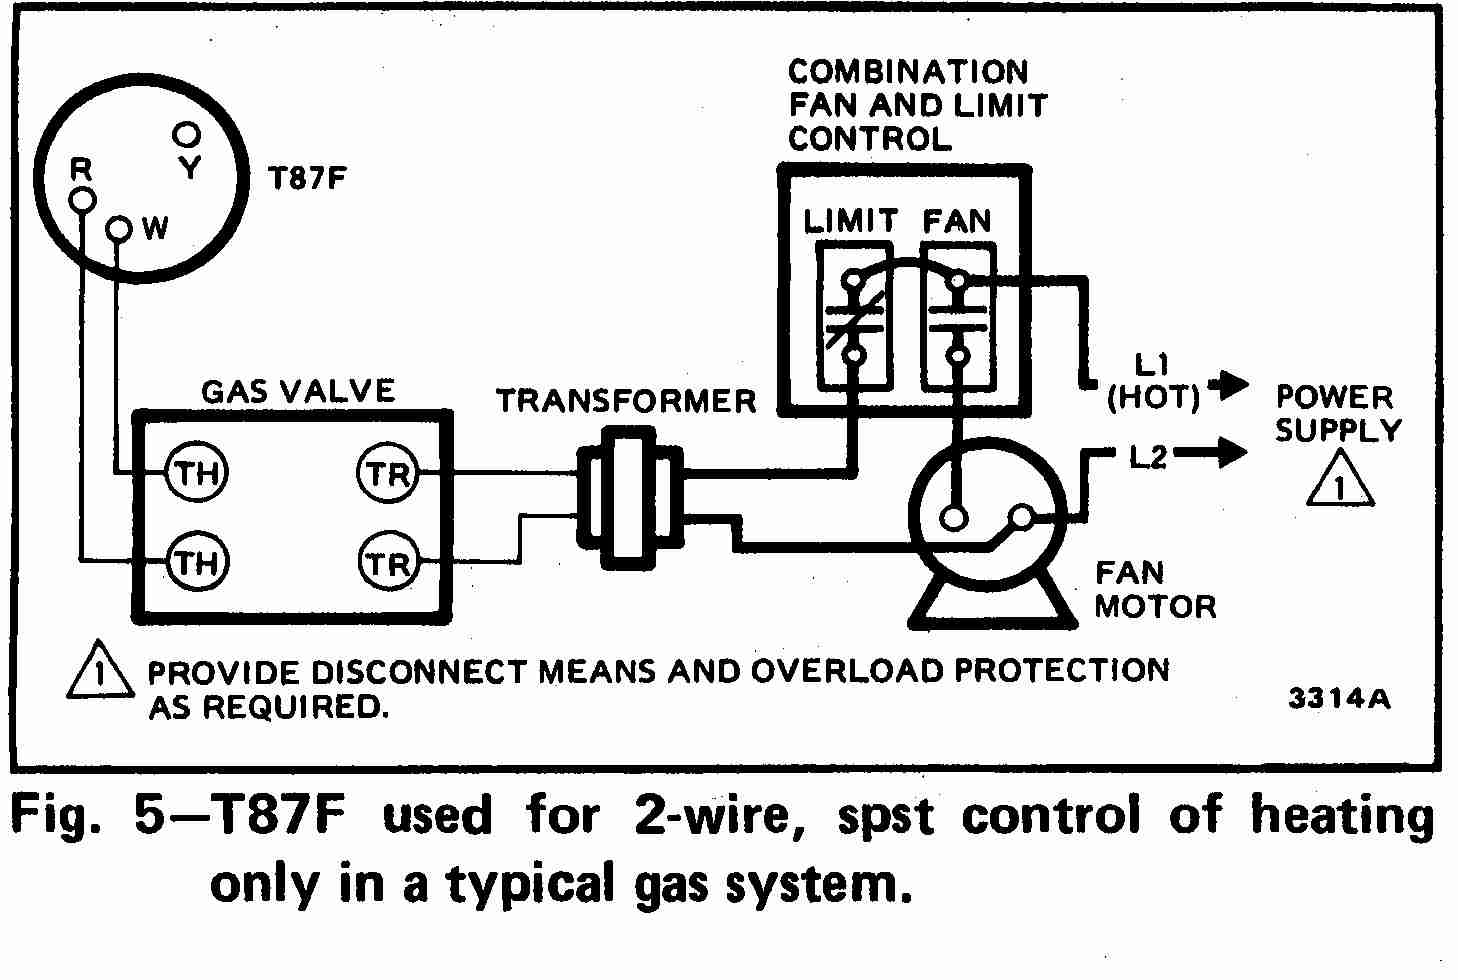 TT_T87F_0002_2Wg_DJF zone valve wiring installation & instructions guide to heating thermostat wiring diagram at crackthecode.co